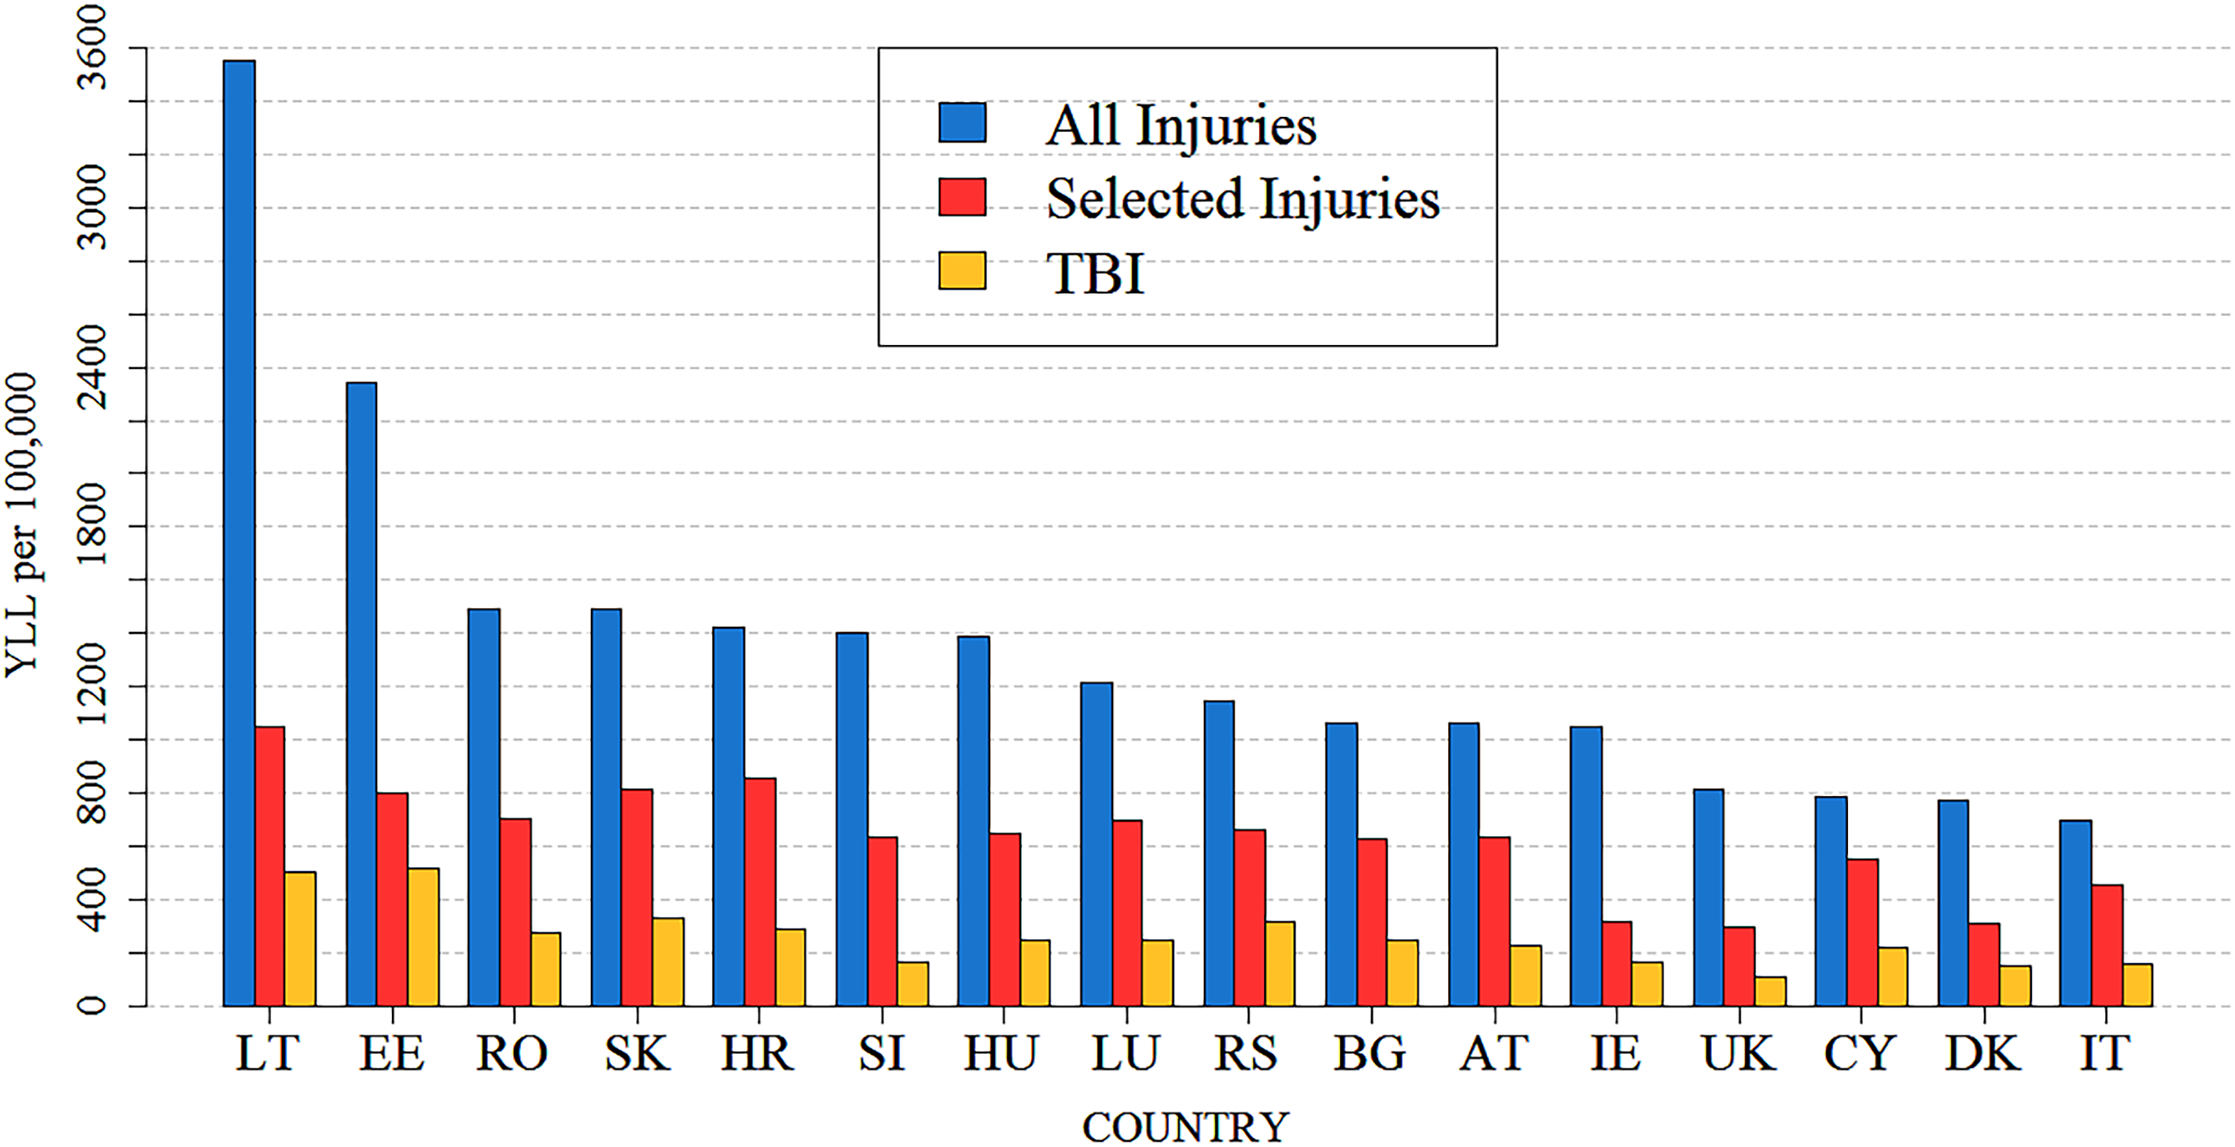 Age-standardized injury YLL rates and TBI YLL rates per 100,000 persons in 16 European countries in 2013.